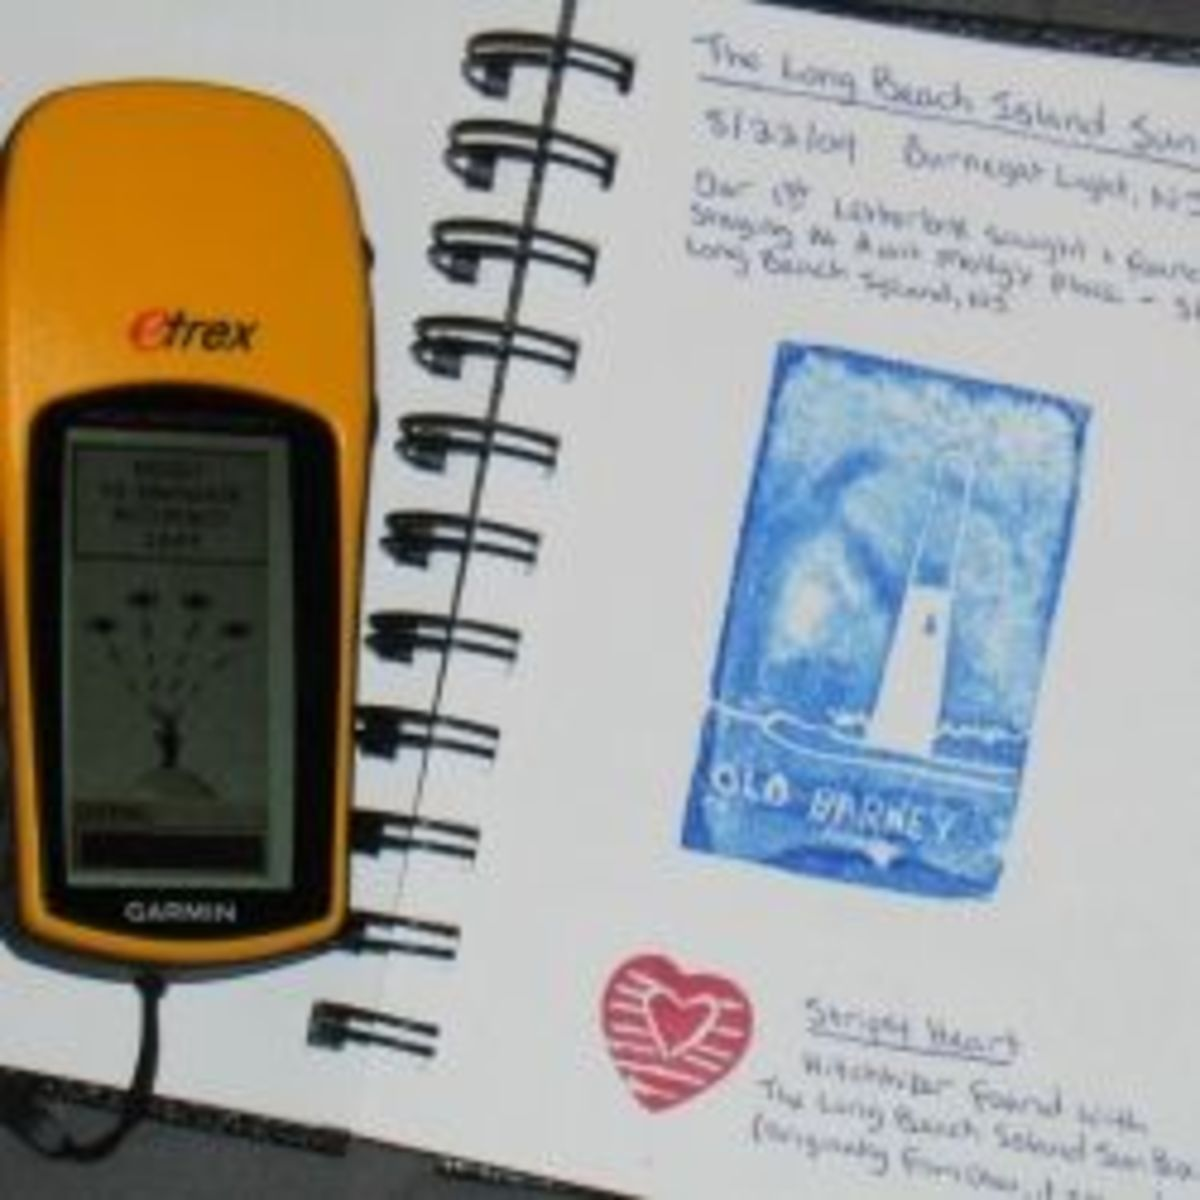 GPS device for geocaching and a letterboxing logbook